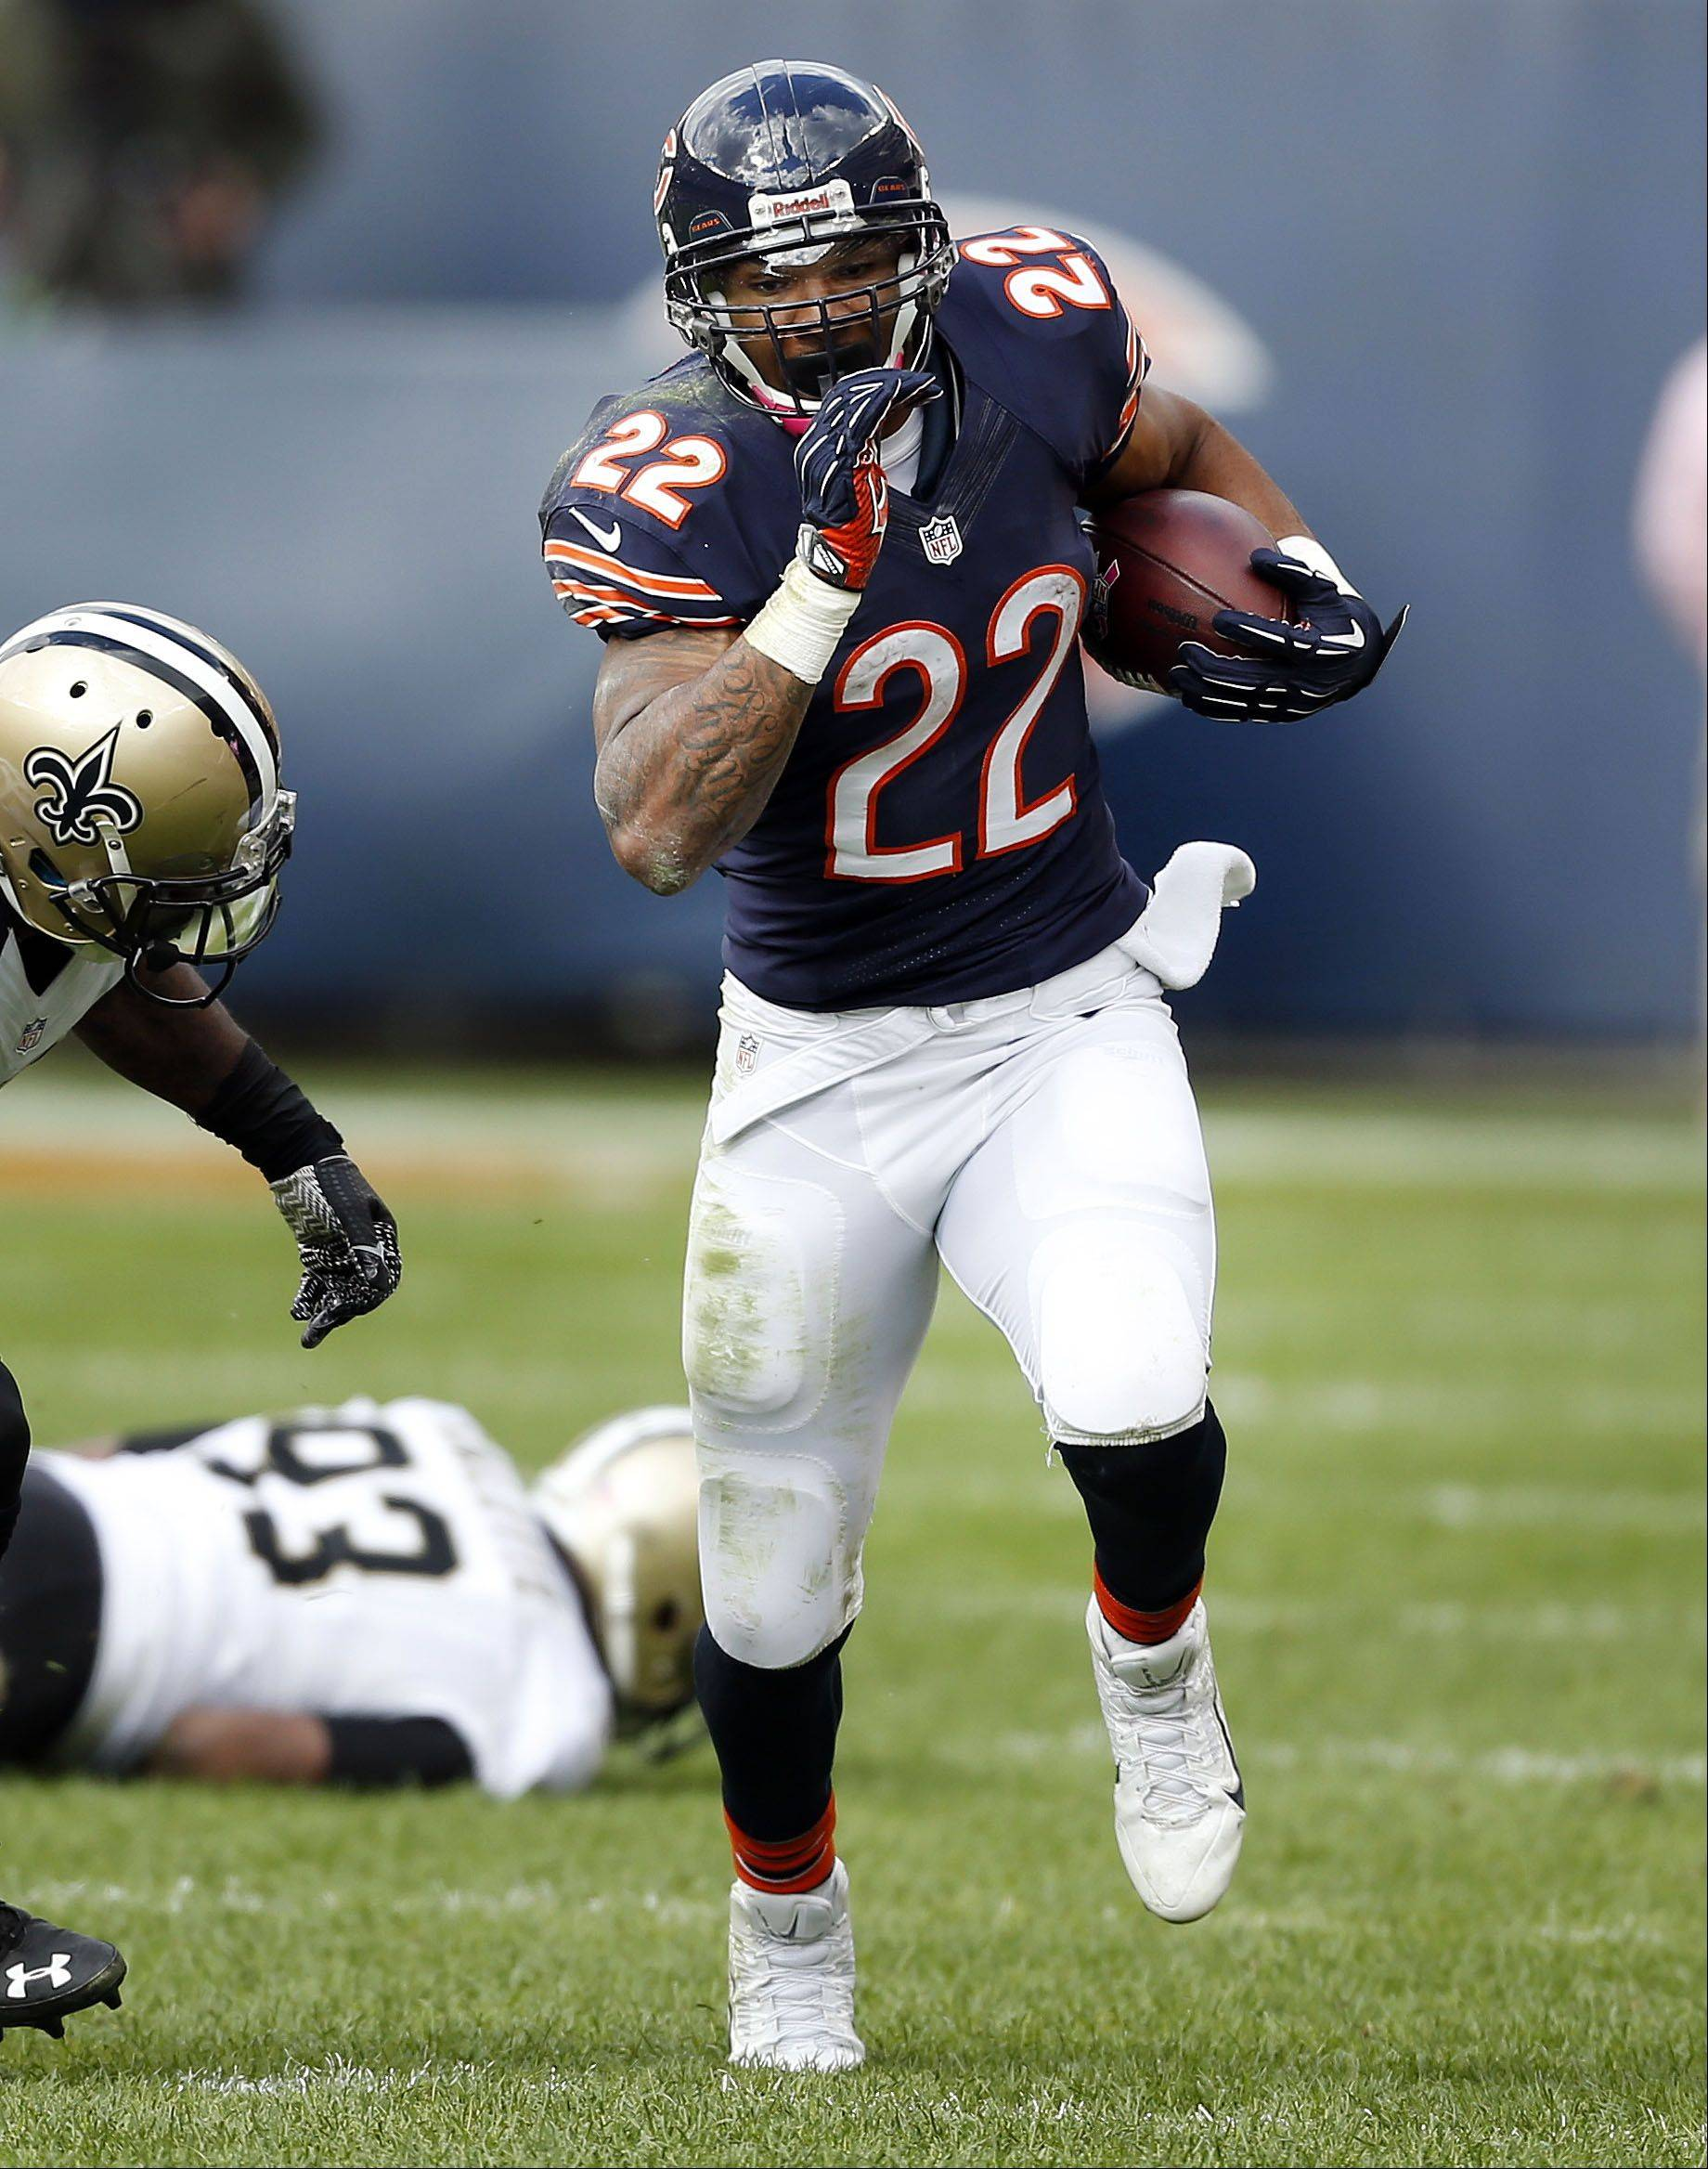 Chicago Bears running back Matt Forte runs during their 26-18 loss Sunday.